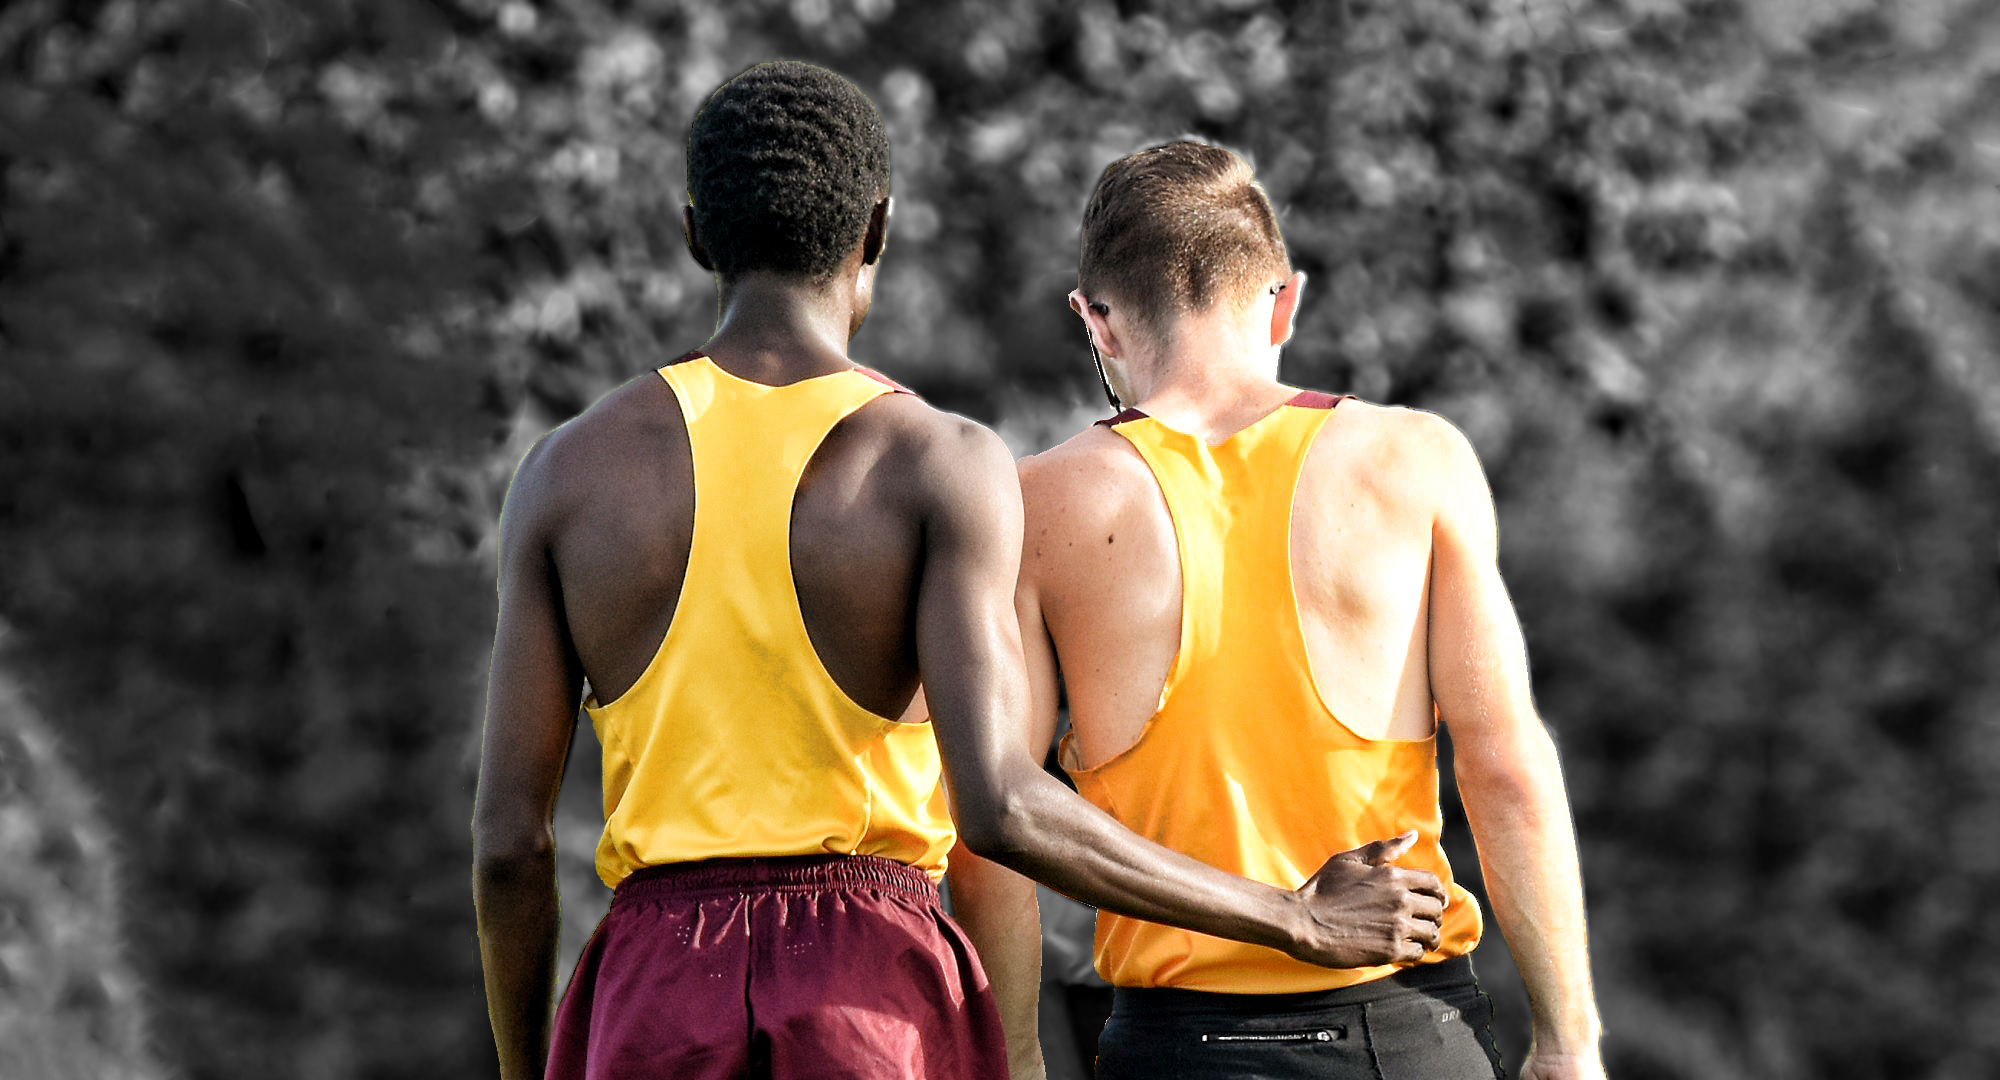 Munir Isahak (L) and Eric Wicklund talk over strategy before a race.